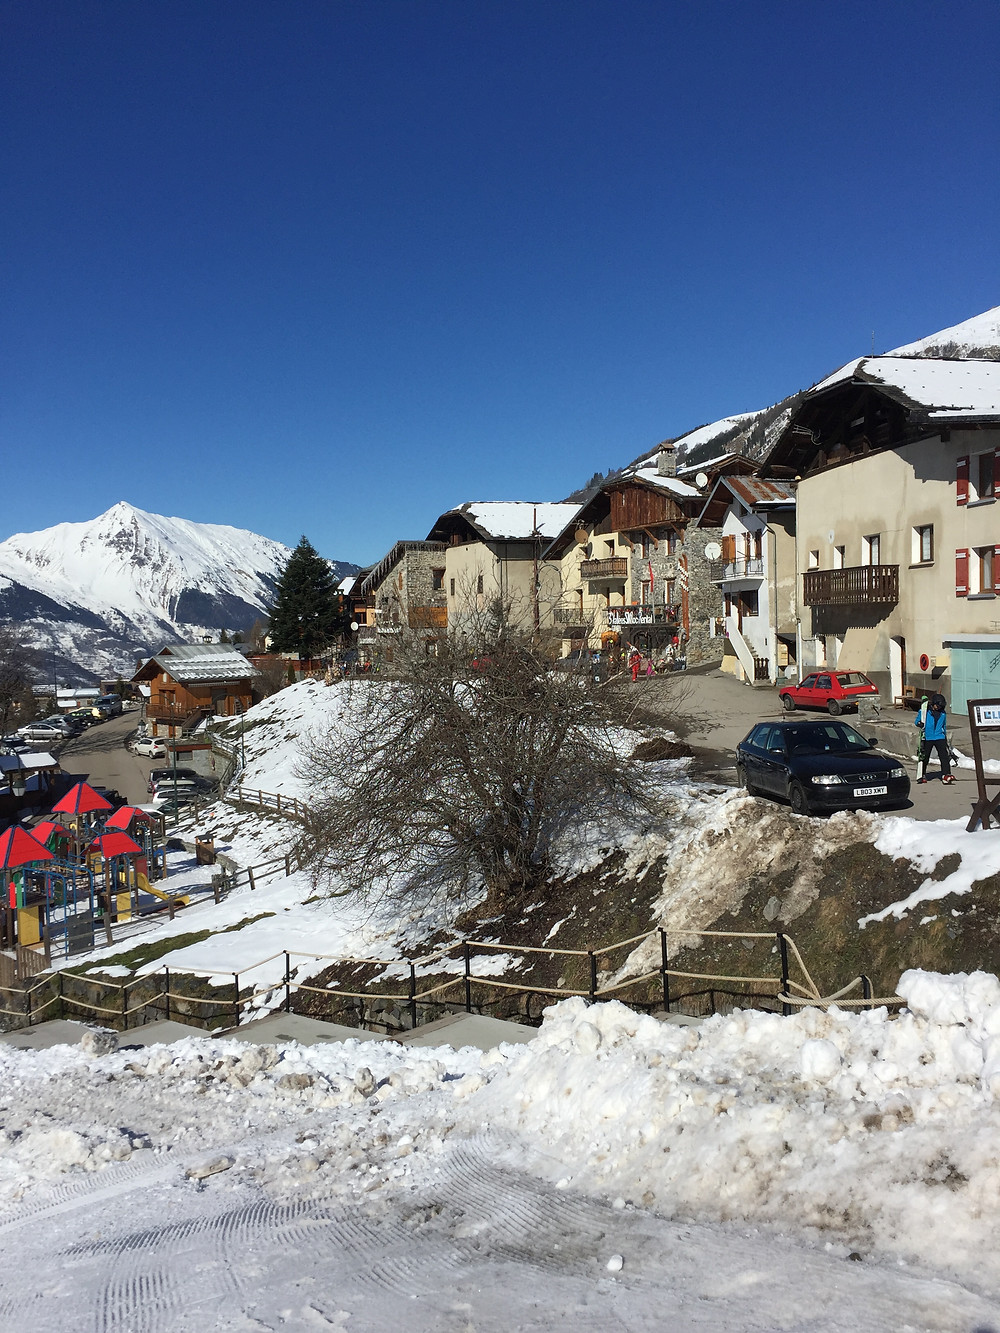 A small French village where we stopped for lunch at a cozy local restaurant